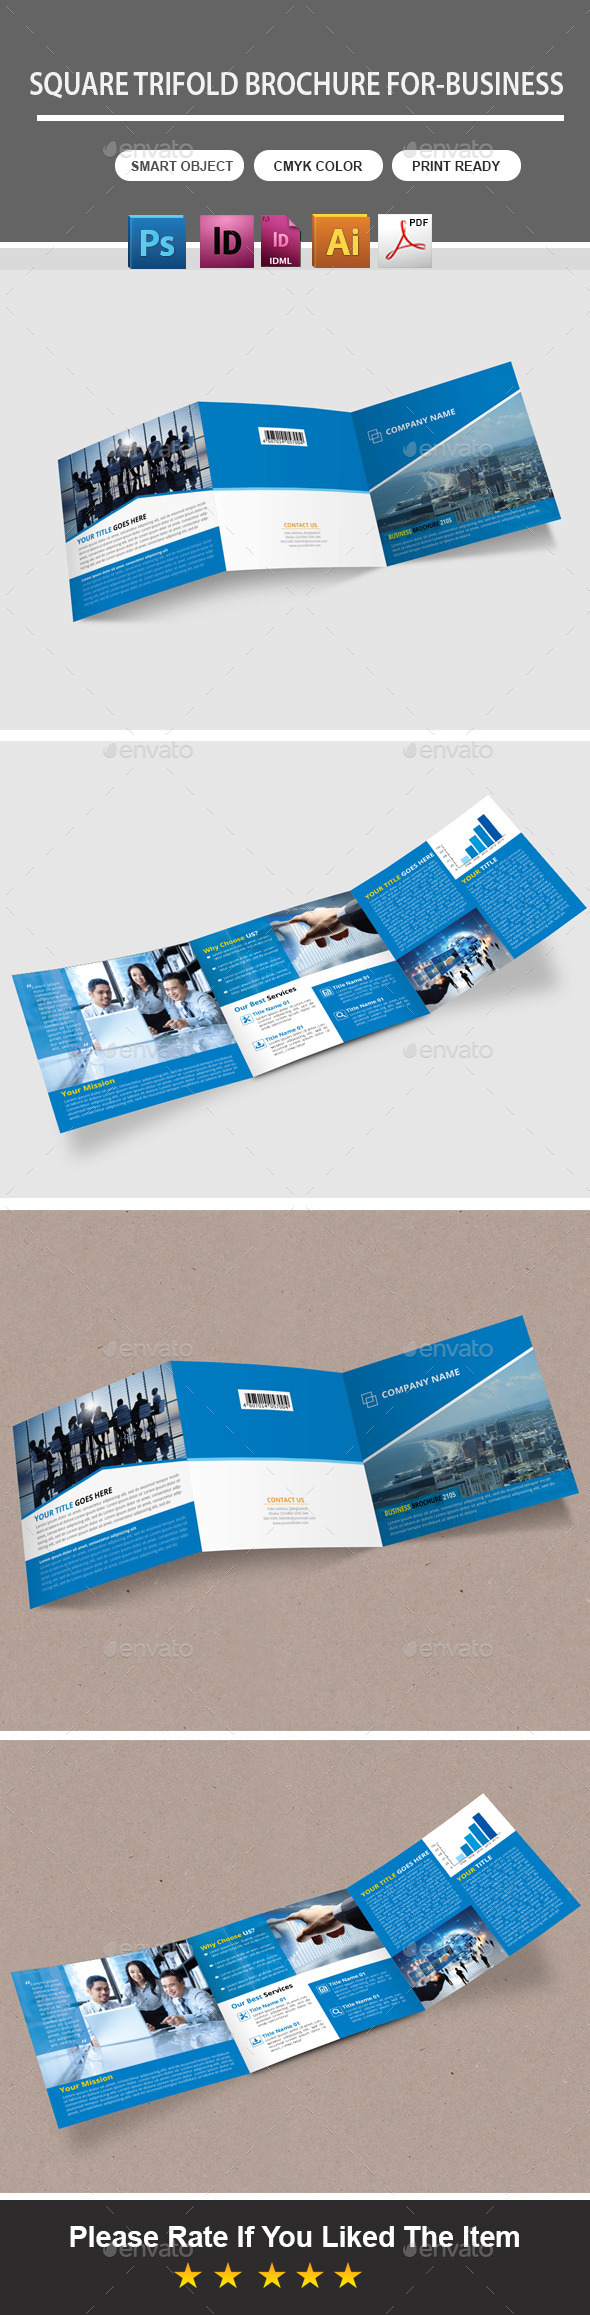 GraphicRiver Square Trifold Brochure For-Business 10875461